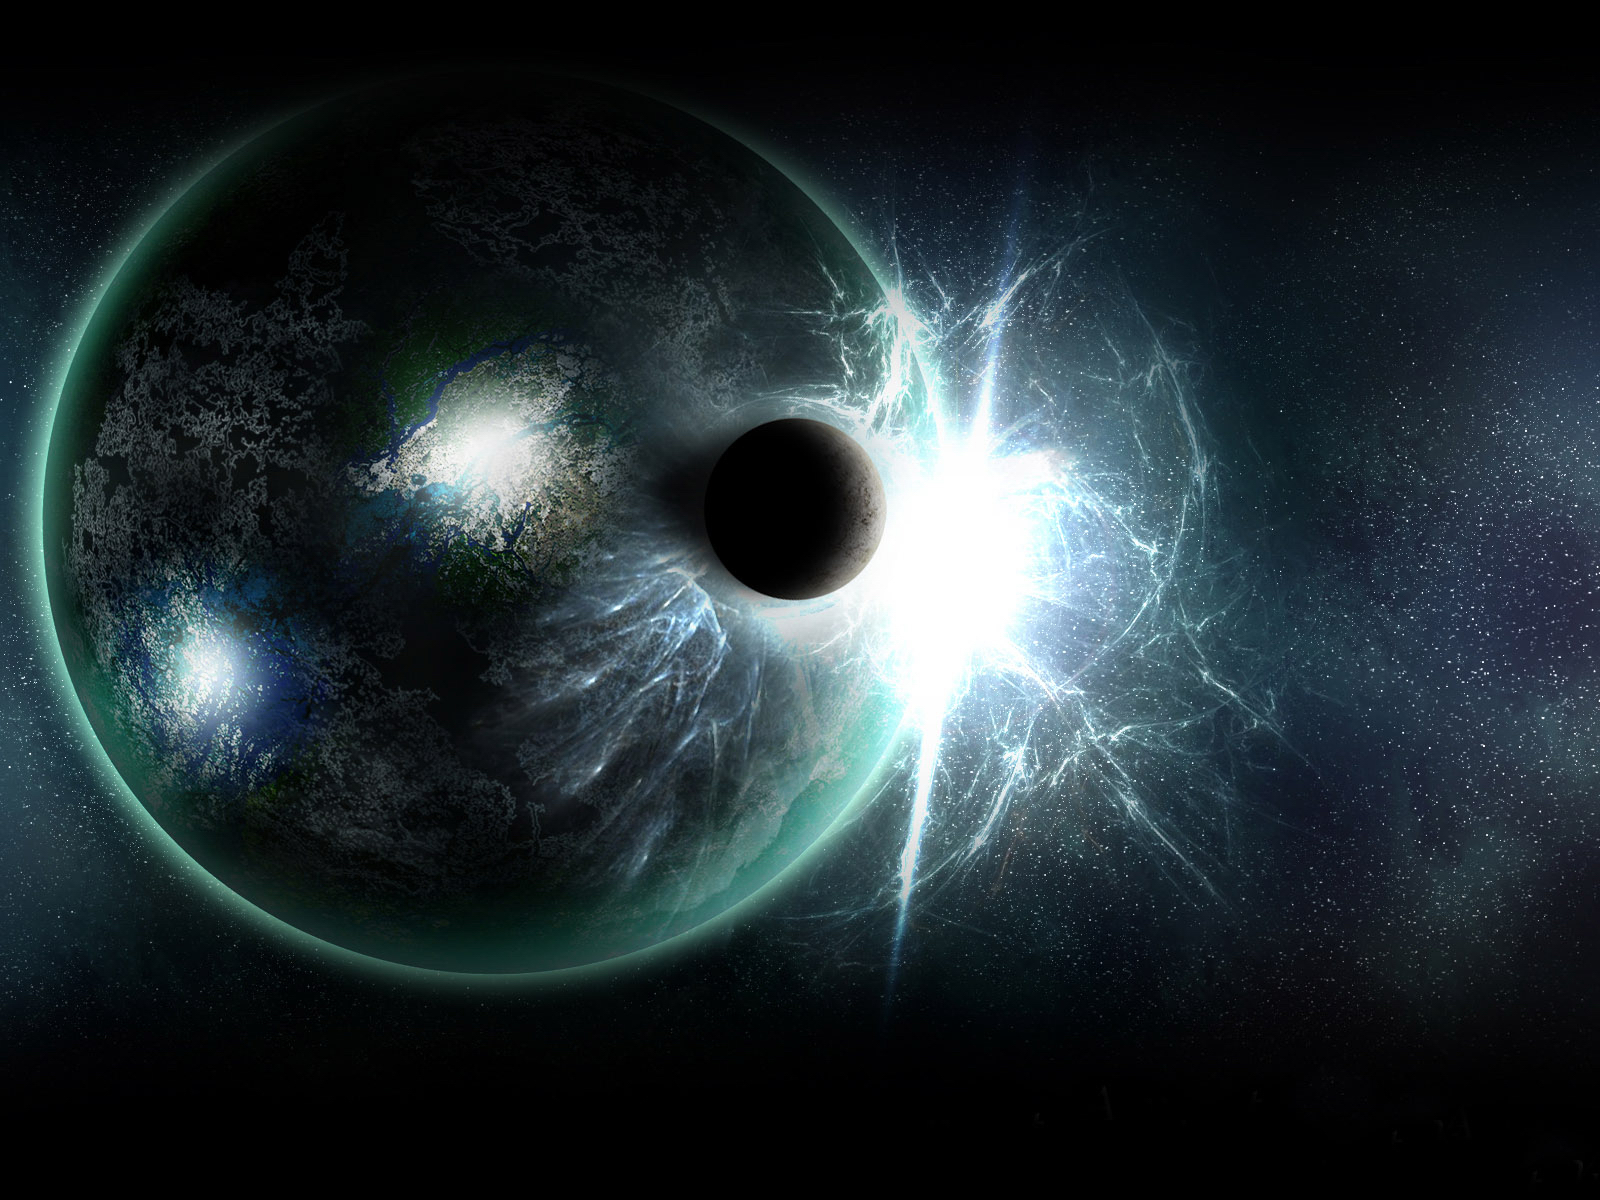 3D HD WALLPAPERS: SPACE WALLPAPERS HD 1080p